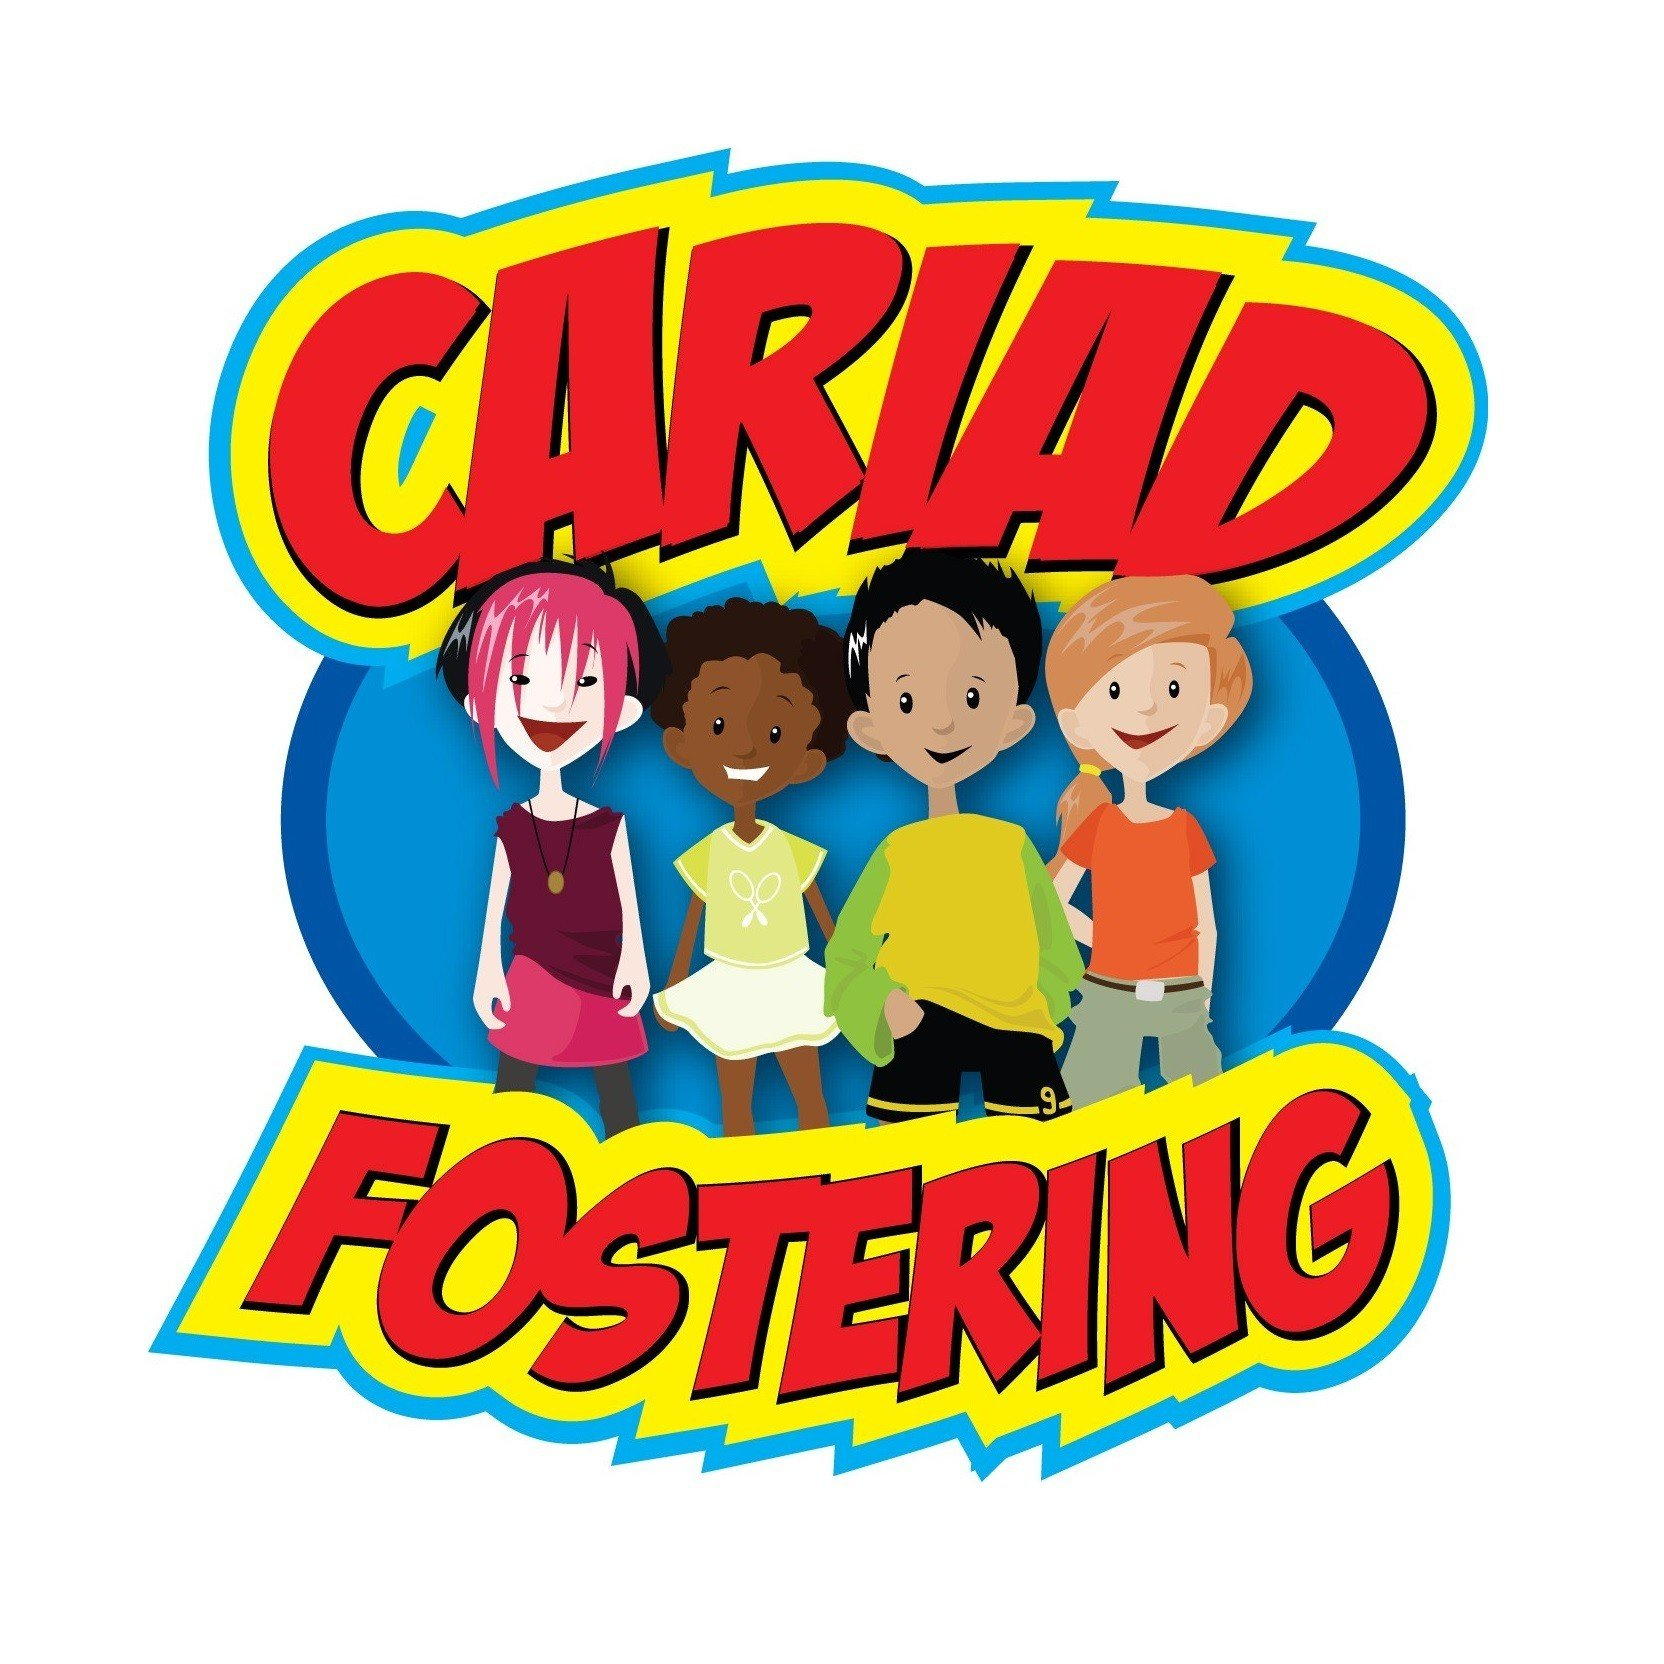 Cariad Fostering | Sony UK TEC